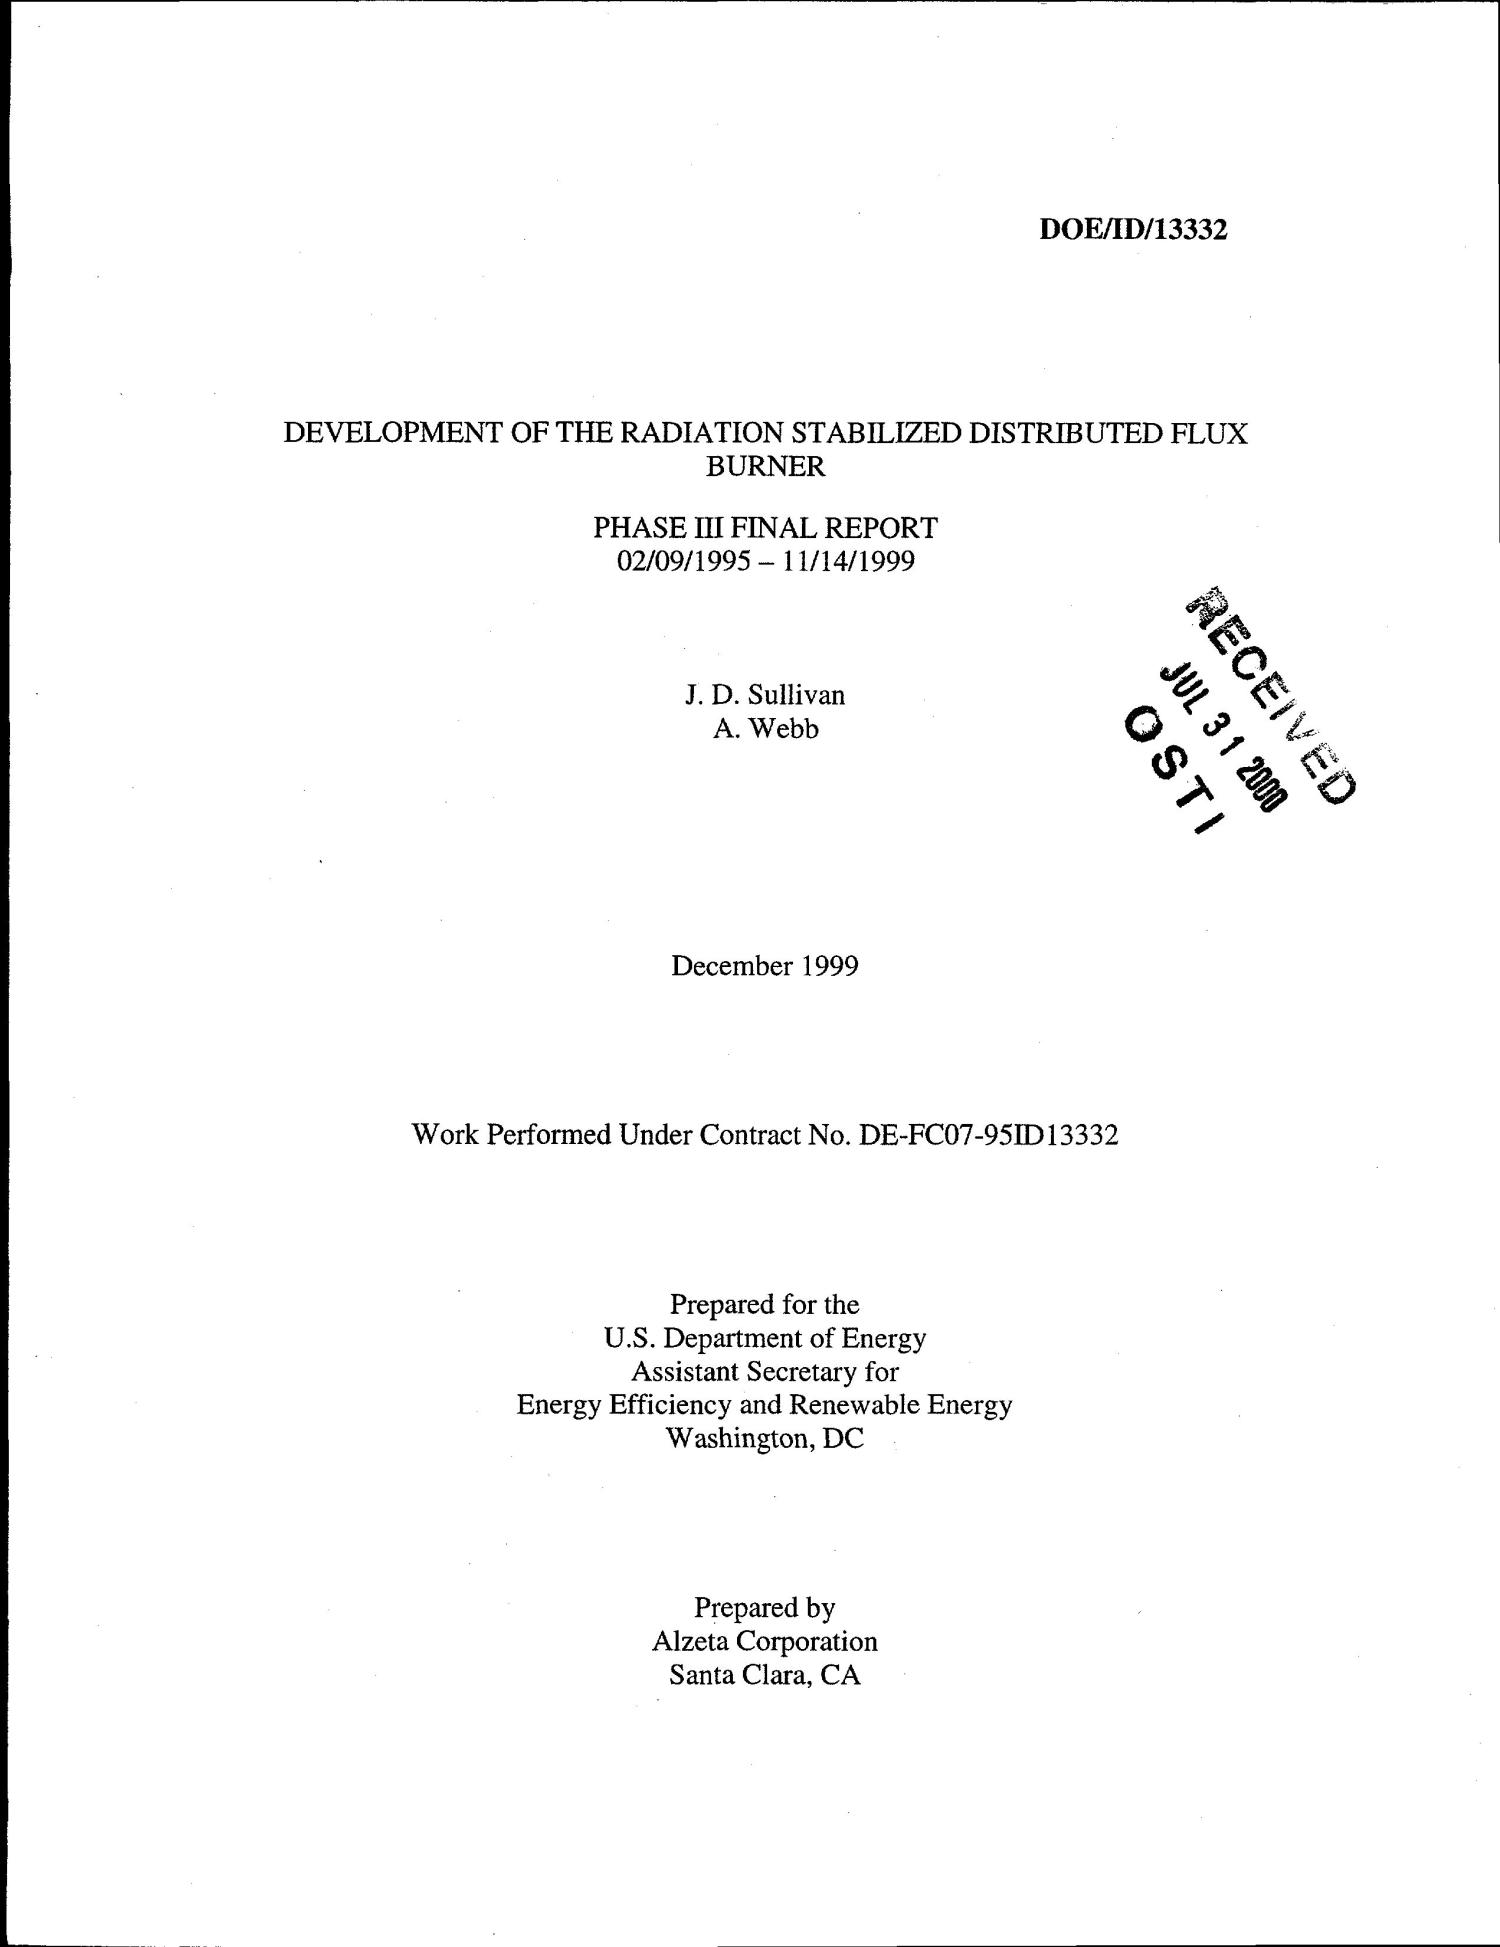 Development of the Radiation Stabilized Distributed Flux Burner - Phase III Final Report                                                                                                      [Sequence #]: 2 of 178